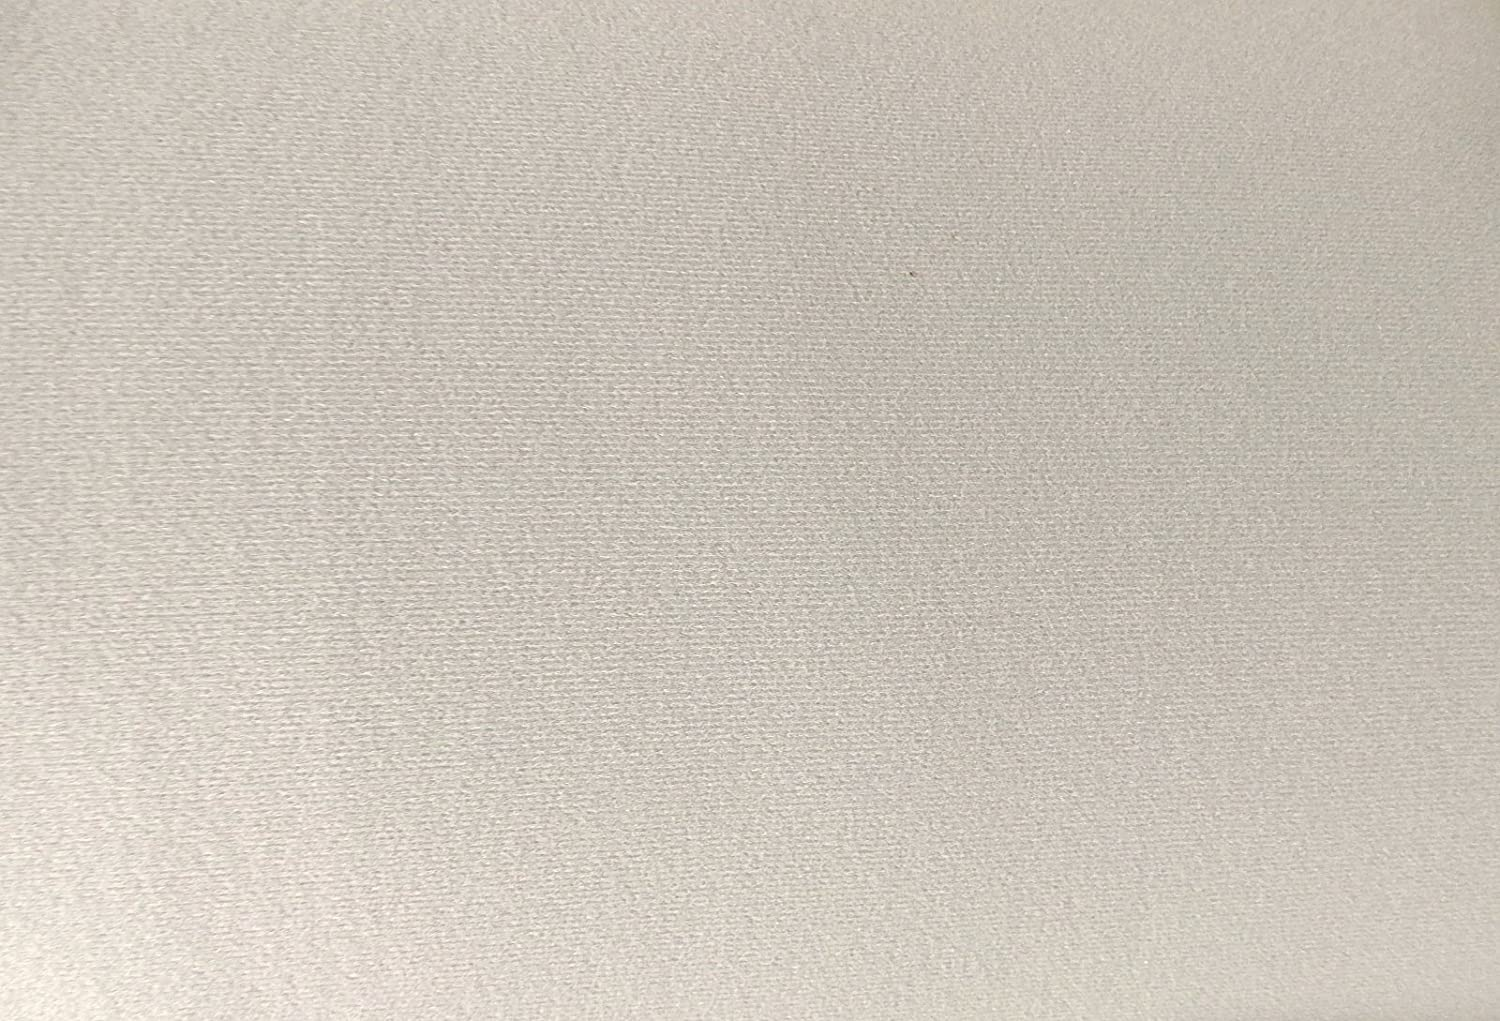 Garnet 3 Yards Automotive Headliner Fabric Foam Backed